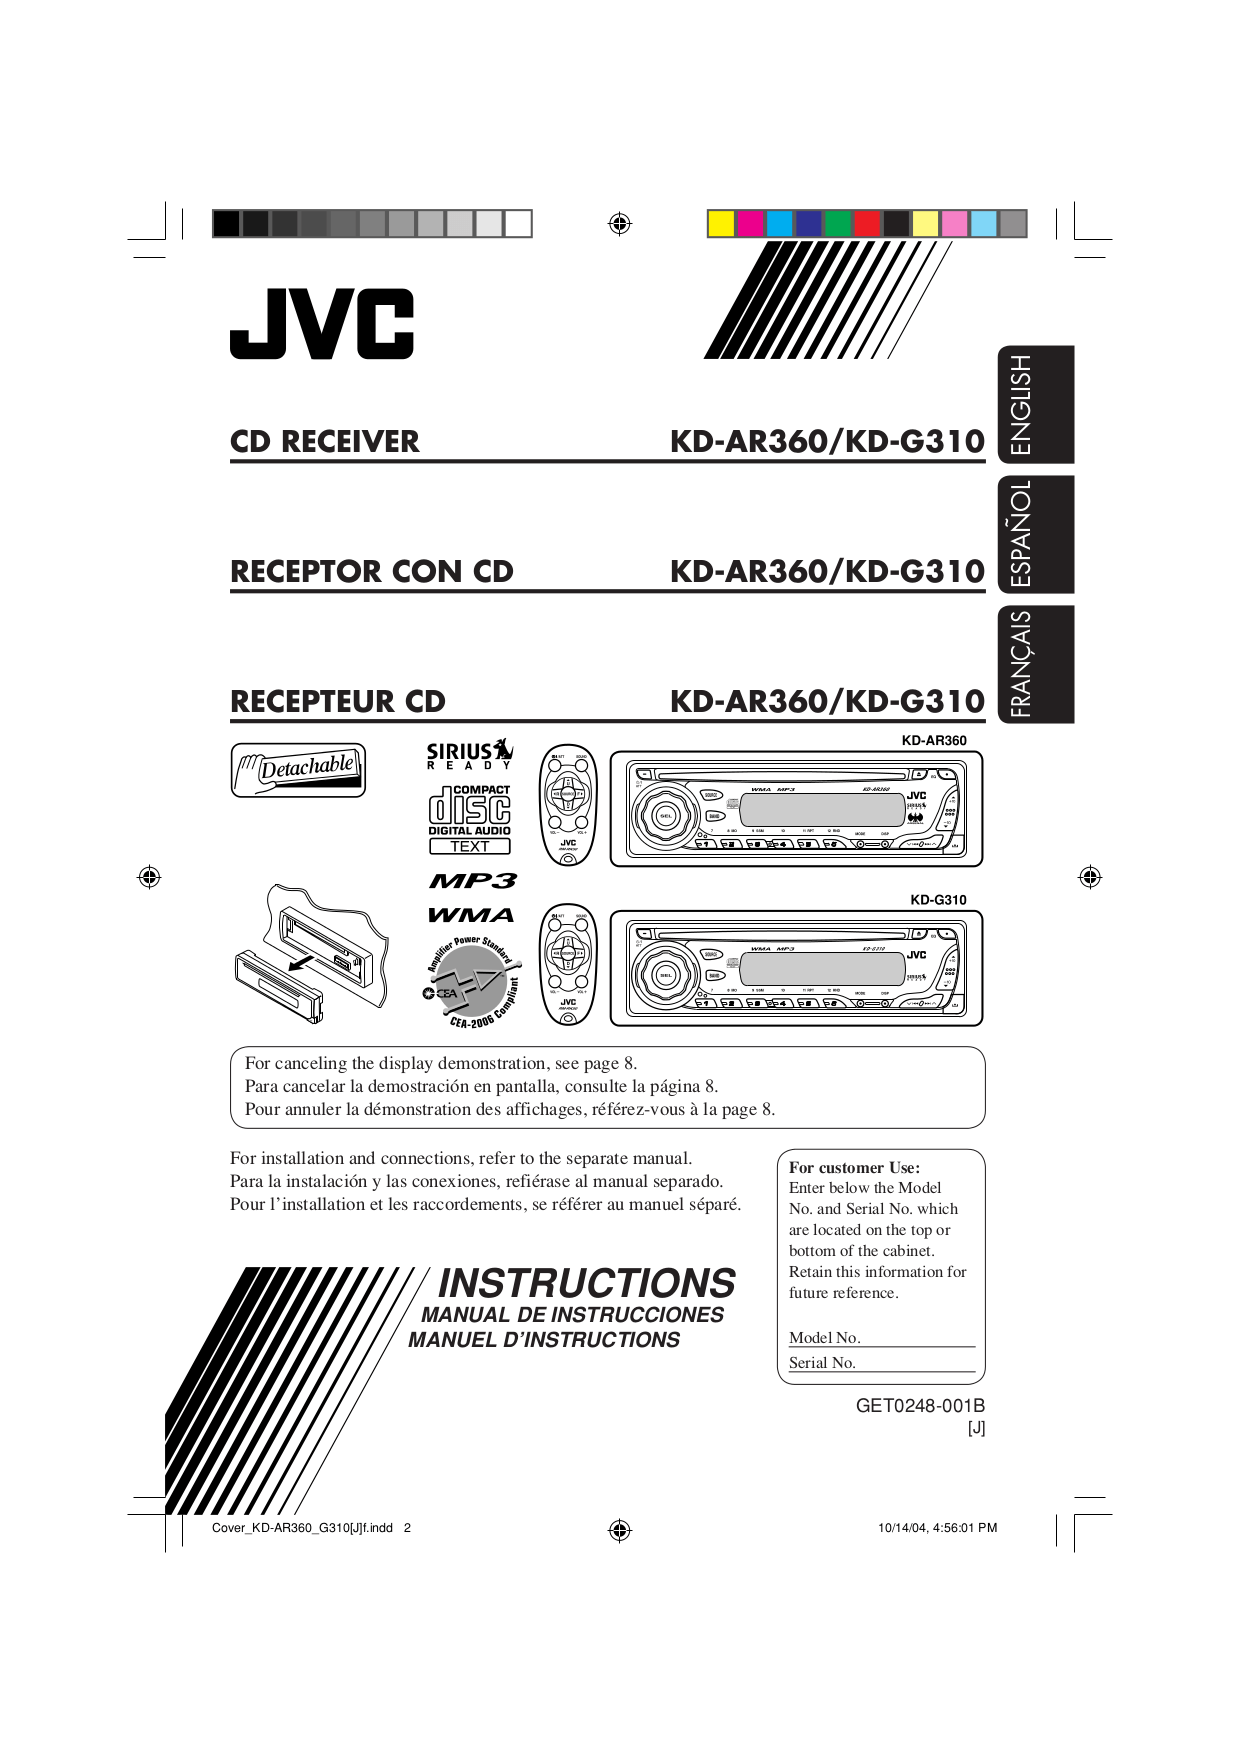 Download free pdf for JVC RD-T5BUUS CD Player manual